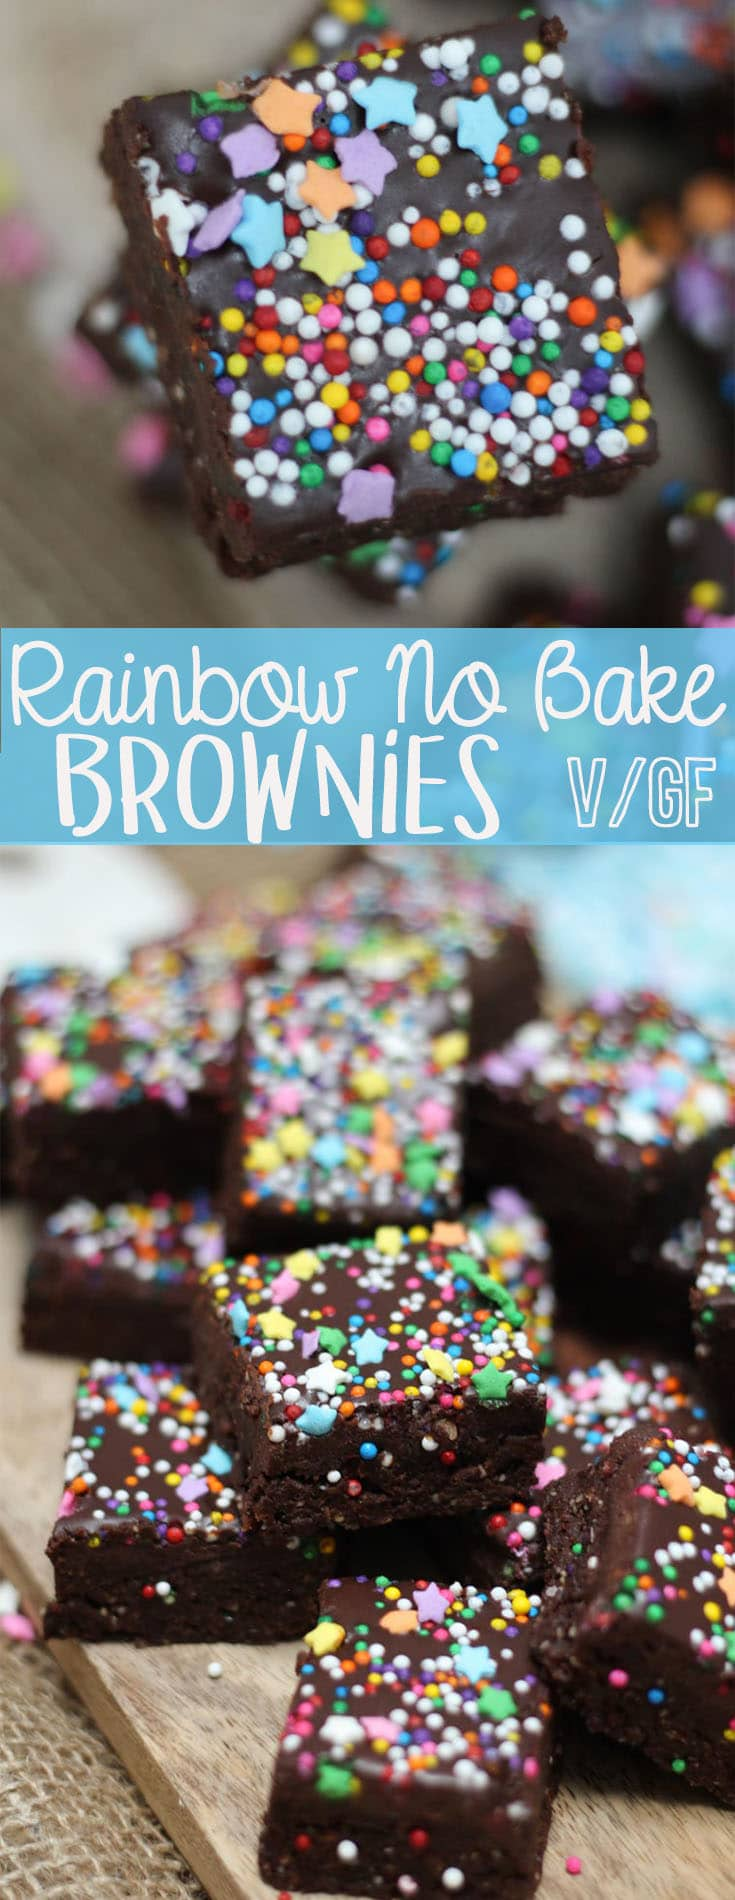 These Healthy Rainbow No Bake Brownies are easy, vegan and gluten free.  #nobake #healthydessert #brownies #dates #rainbow #vegandessert